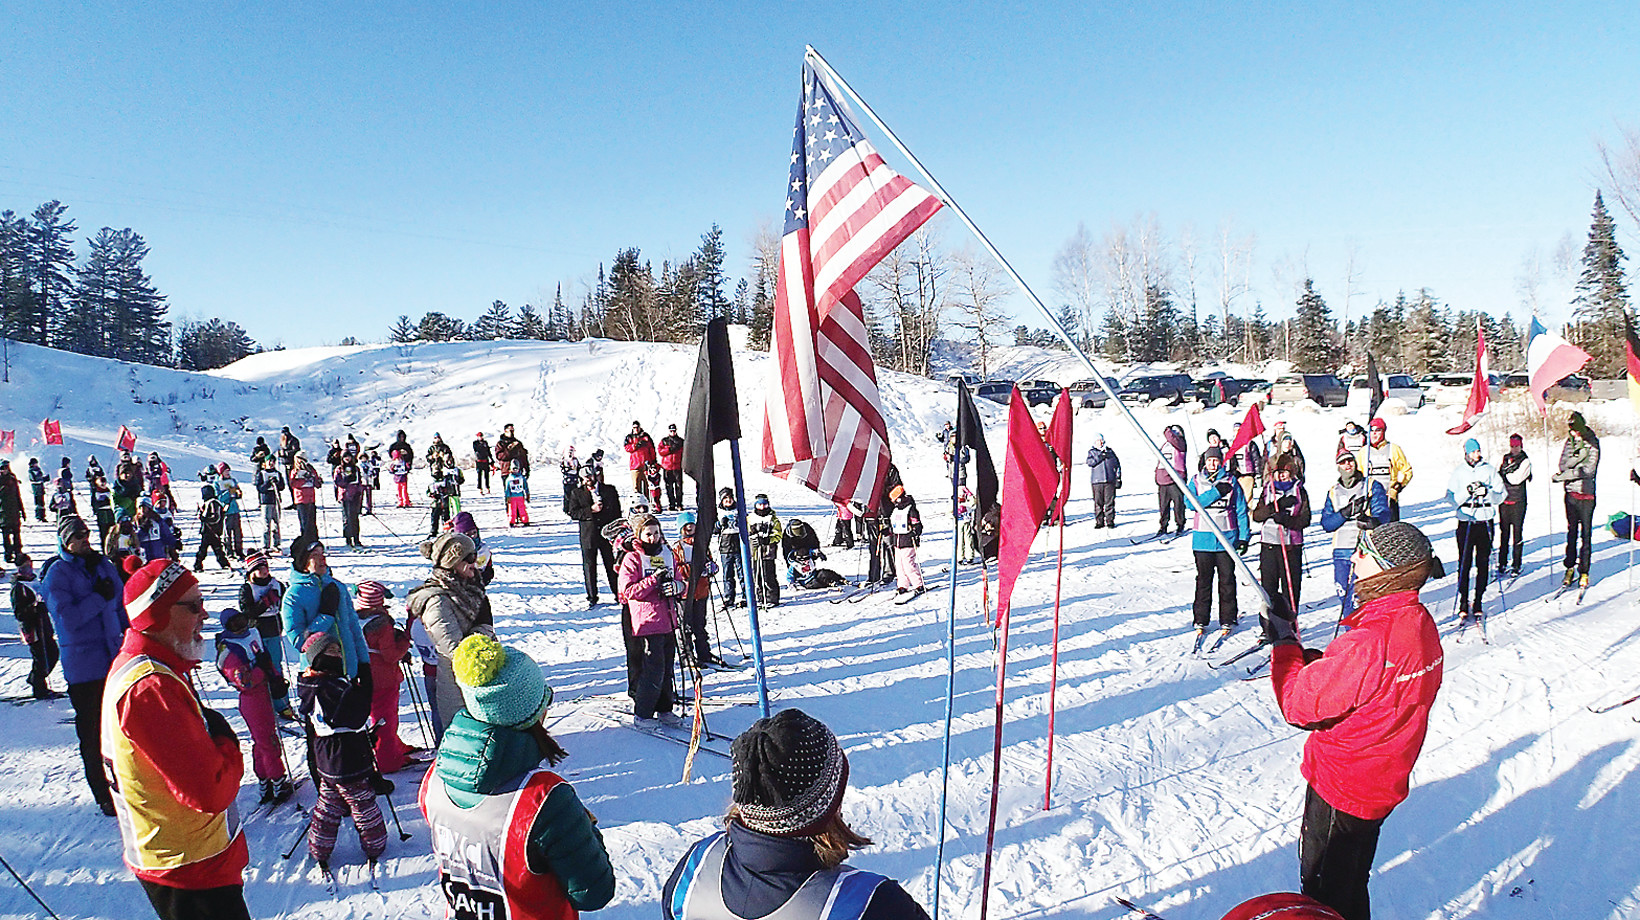 Dozens of Ely-area families participate in the Minnesota Youth Ski League each winter at Hidden Valley Recreation Area. The popular learn-to-ski program is held in January and February.